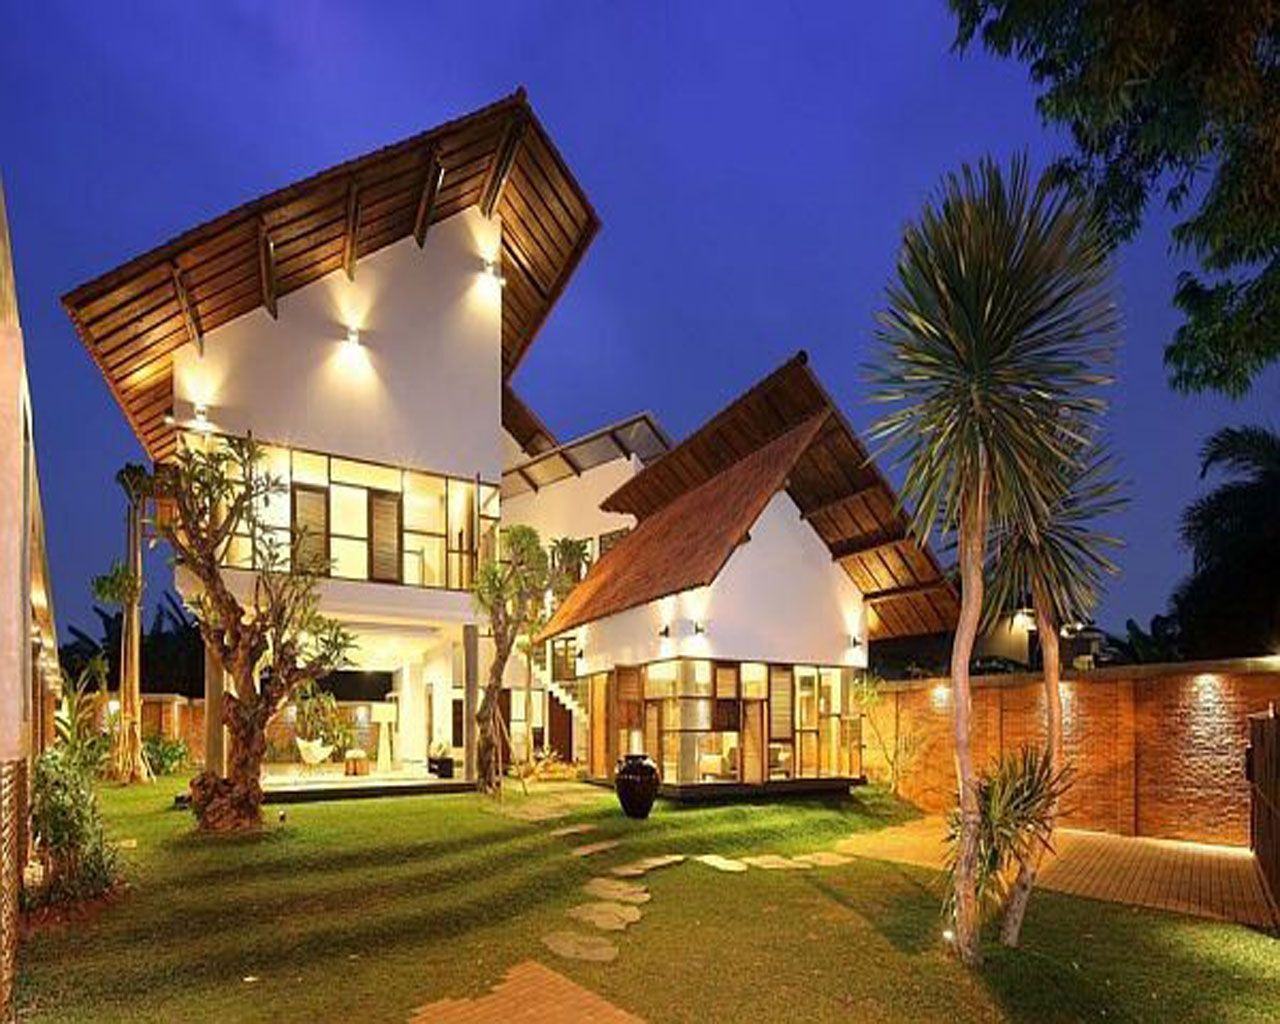 Fascinating tropical roof design representing elegant lighting system and brown wooden gable end - Wooden vacation houses nature style ...